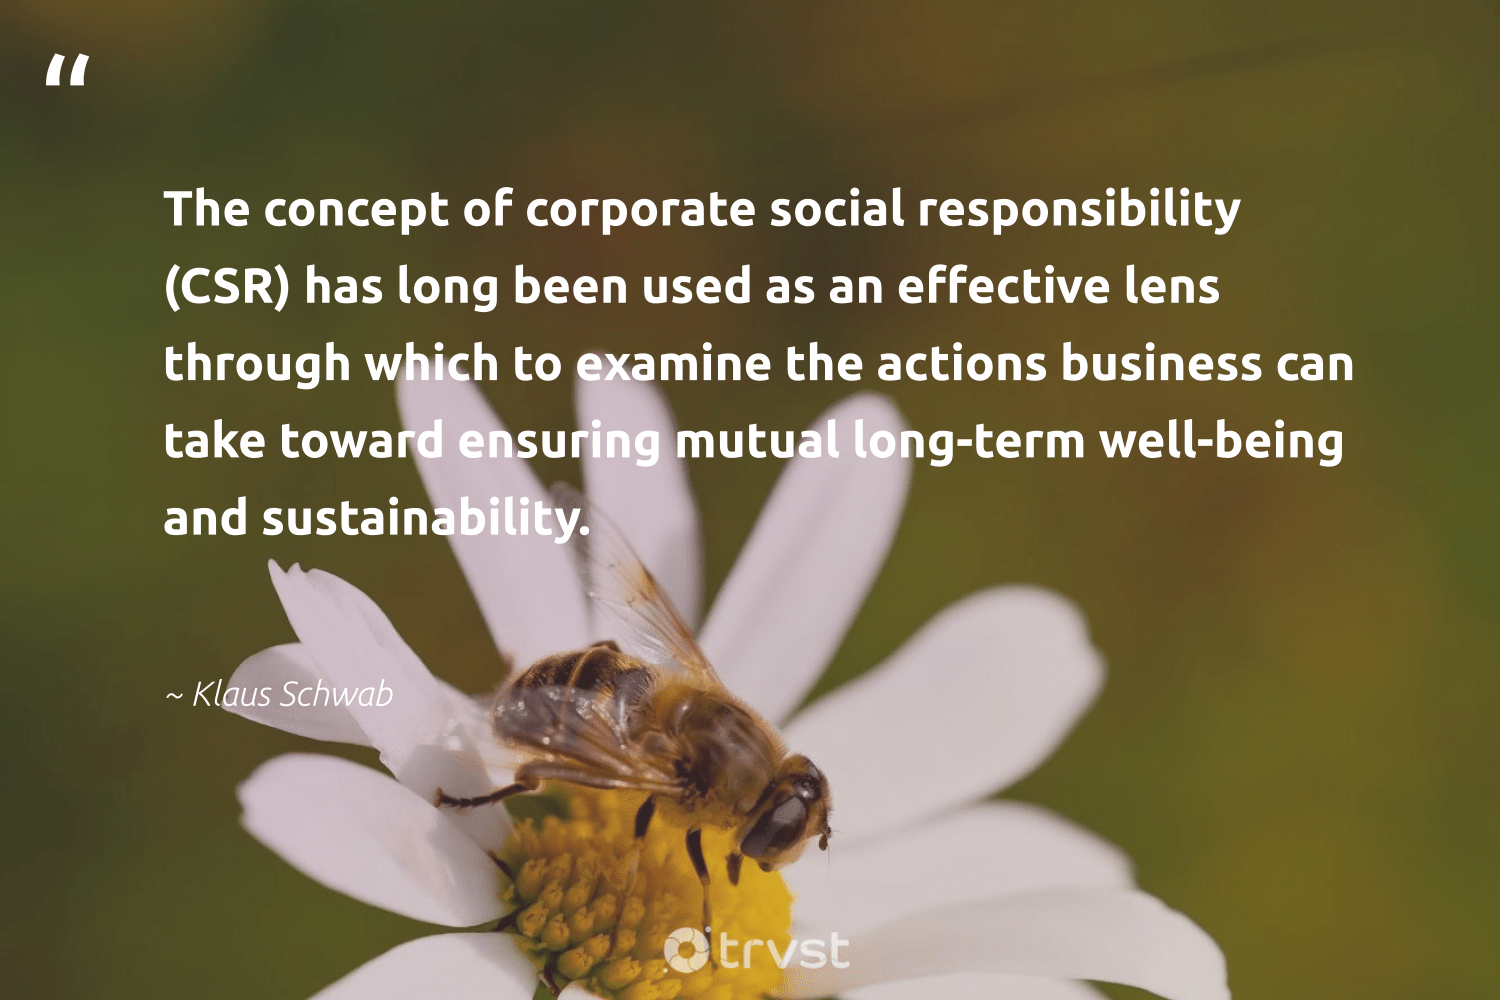 """""""The concept of corporate social responsibility (CSR) has long been used as an effective lens through which to examine the actions business can take toward ensuring mutual long-term well-being and sustainability.""""  - Klaus Schwab #trvst #quotes #CSR #sustainability #corporatesocialresponsibility #wellbeing #corporatevolunteering #sustainable #weareallone #dogood #sharedresponsibility #socialchange"""